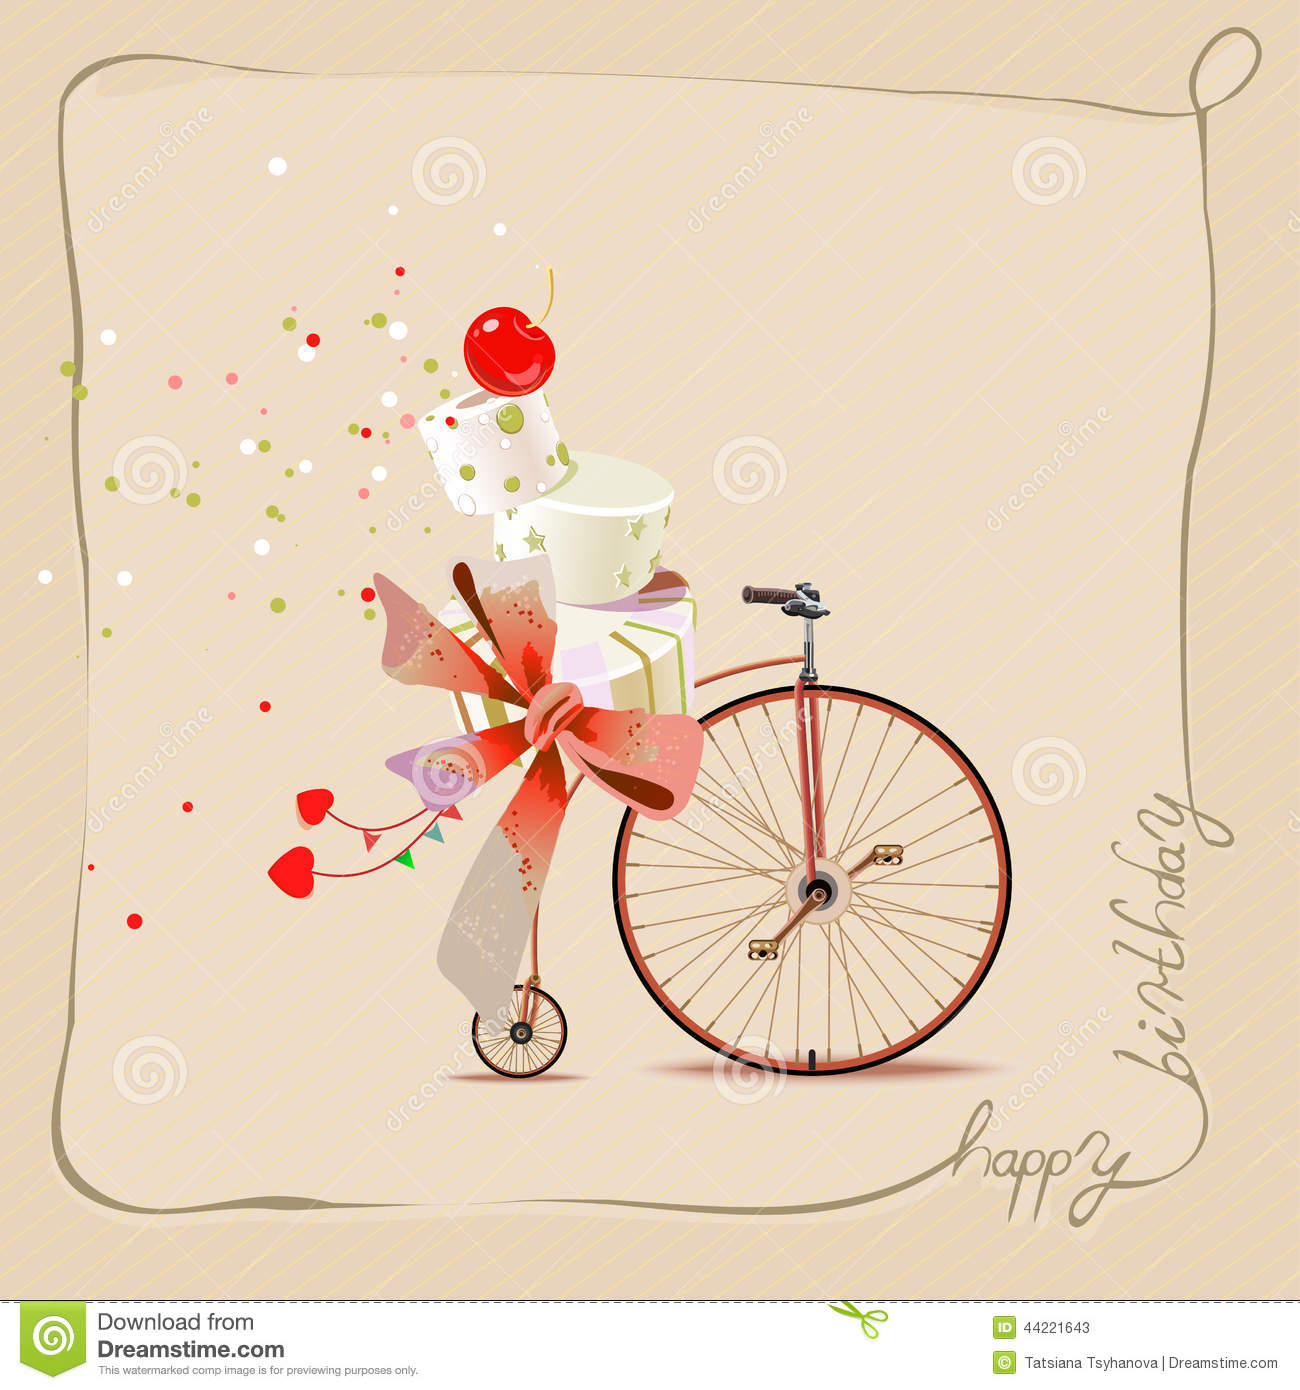 Happy Birthday Romantic Greeting Card Bicycle And Cake Vintage Style